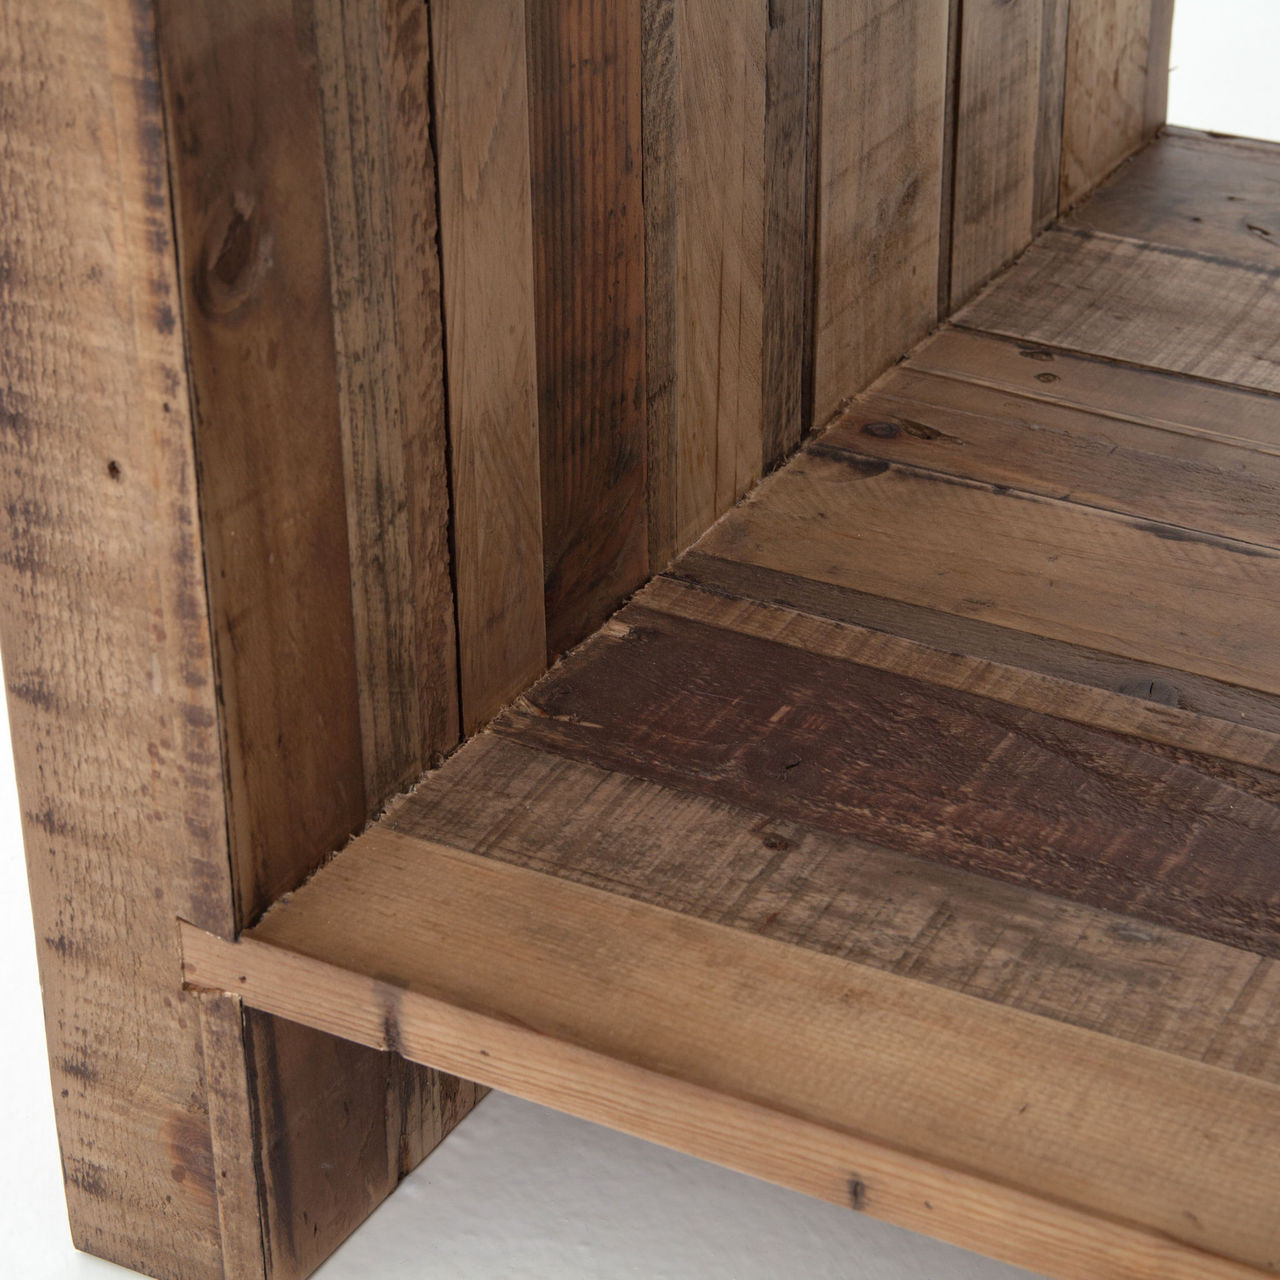 Suffolk Simplicity Reclaimed Wood Square Industrial Coffee: Angora Reclaimed Wood Square End Table